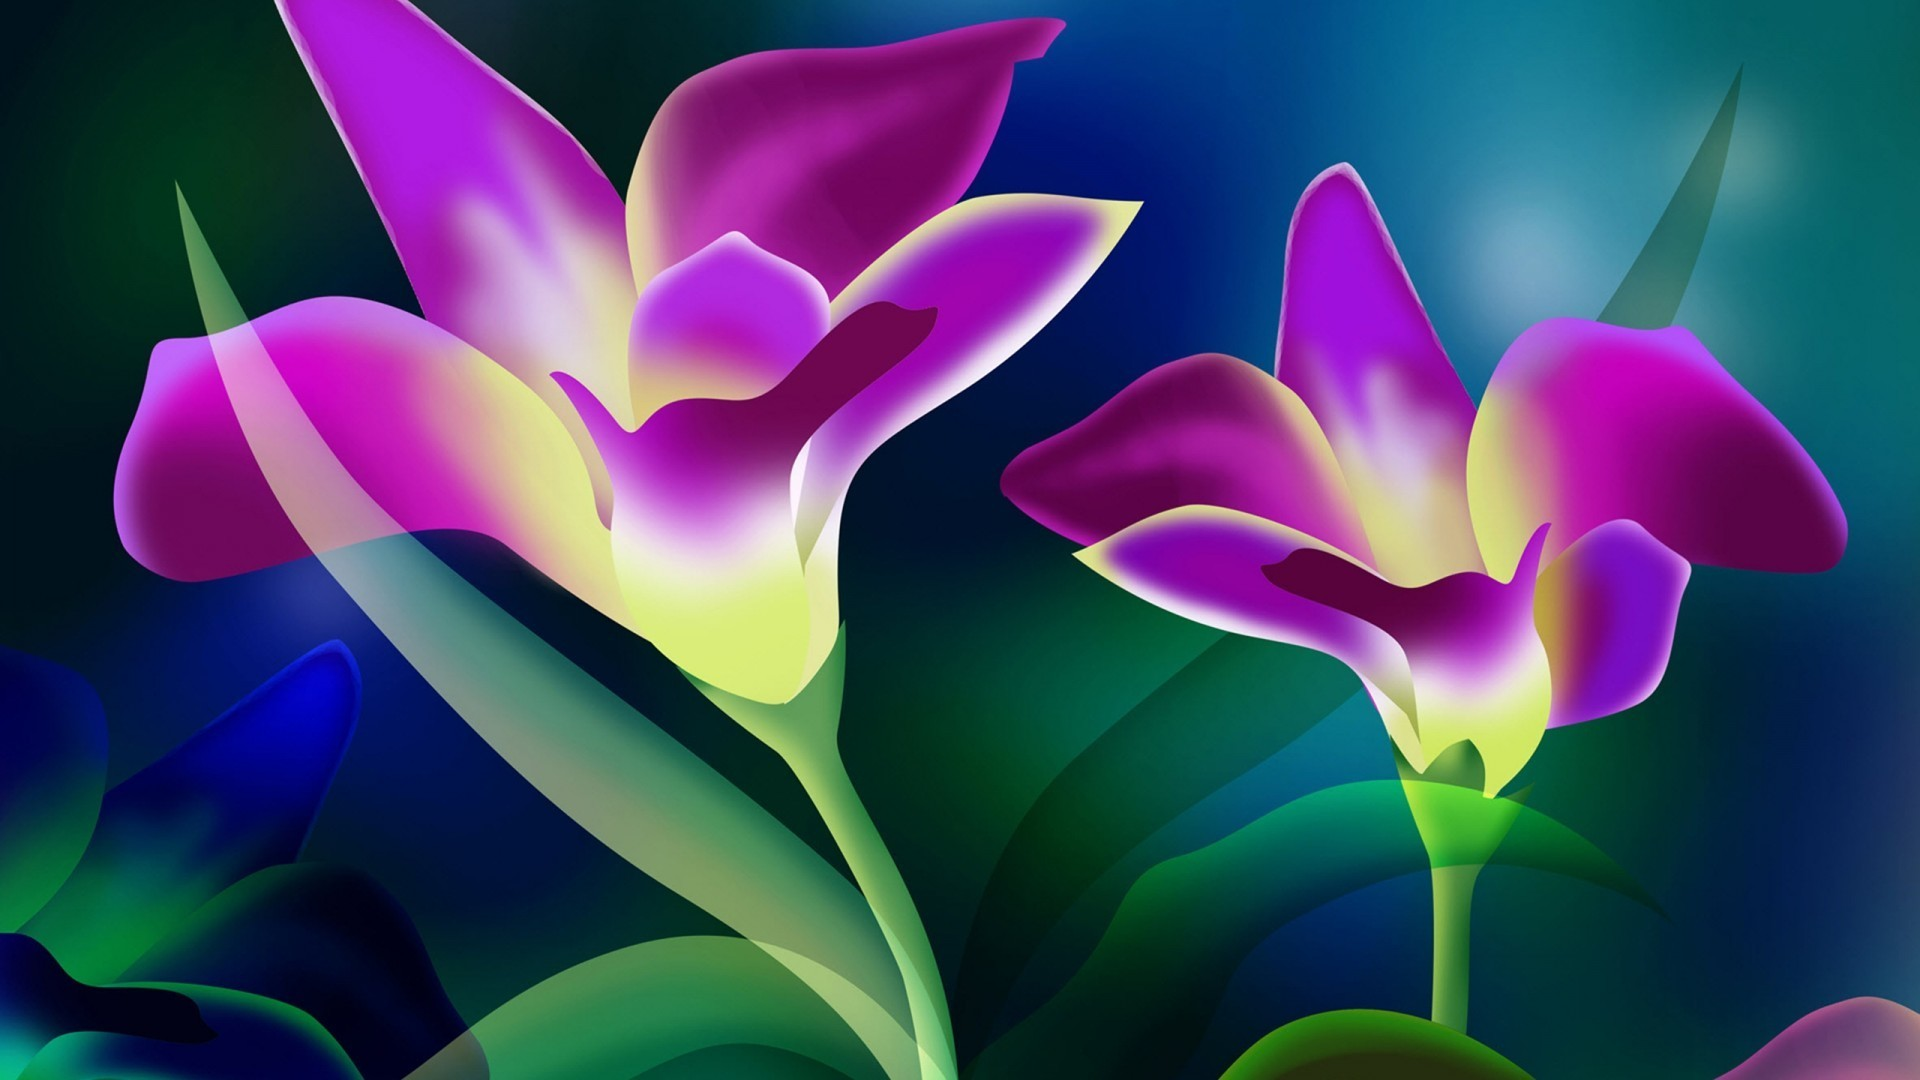 Purple Wallpapers 12 Best Wallpapers Collection Desktop: Purple Desktop Wallpapers (77+ Images